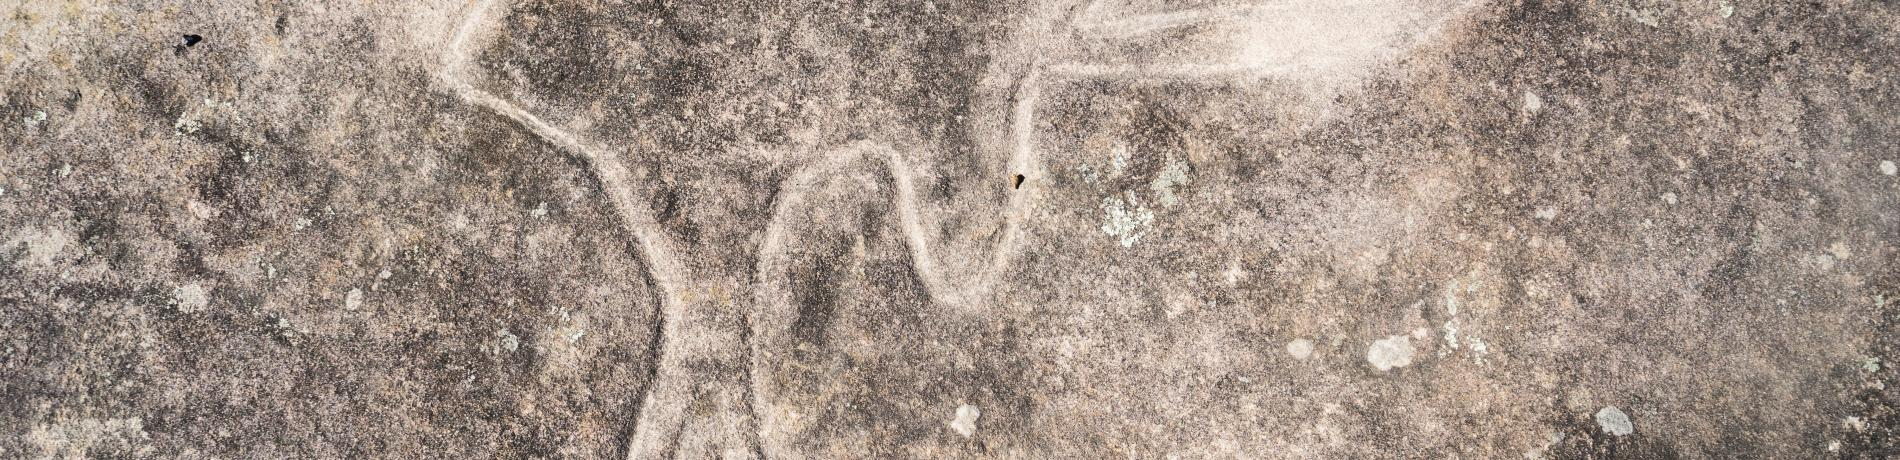 Finchley Aboriginal Area Aboriginal rock engravings credit Simone Cottrell